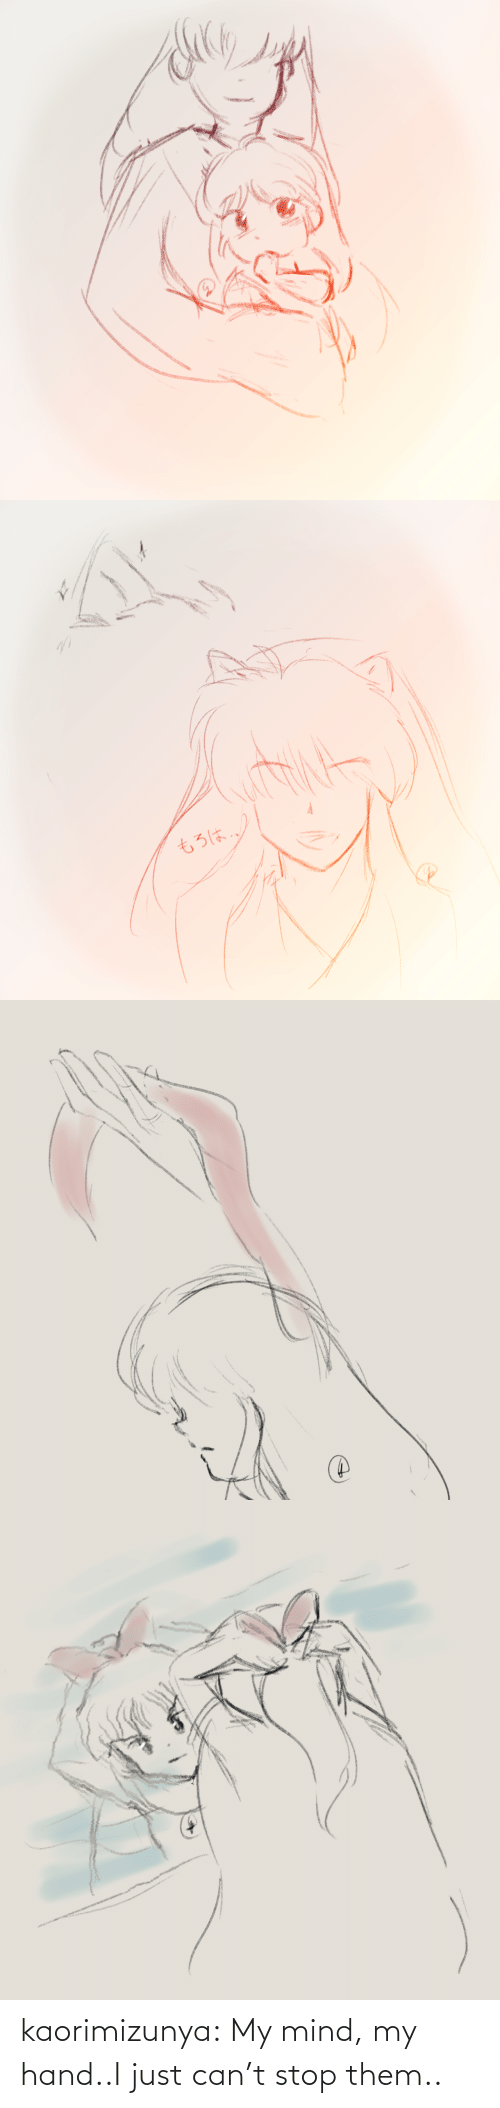 can't stop: kaorimizunya: My mind, my hand..I just can't stop them..